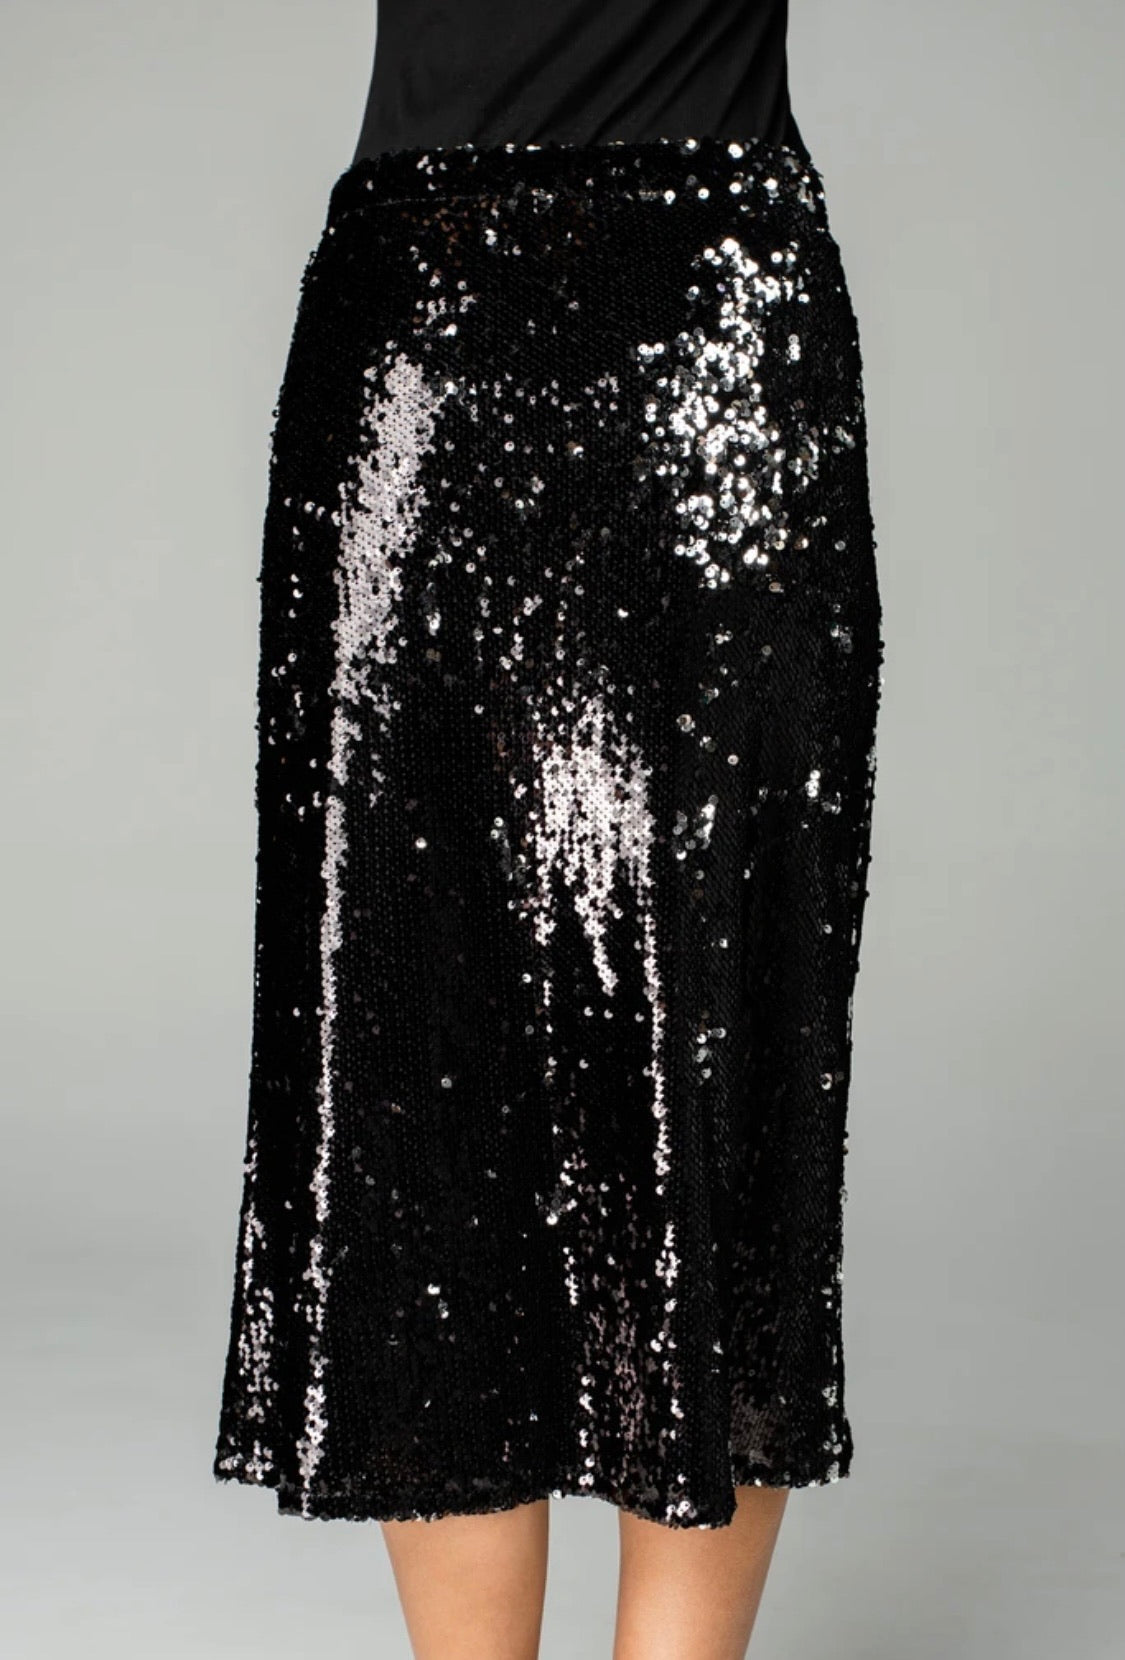 Sequin MIDI Skirt | Black